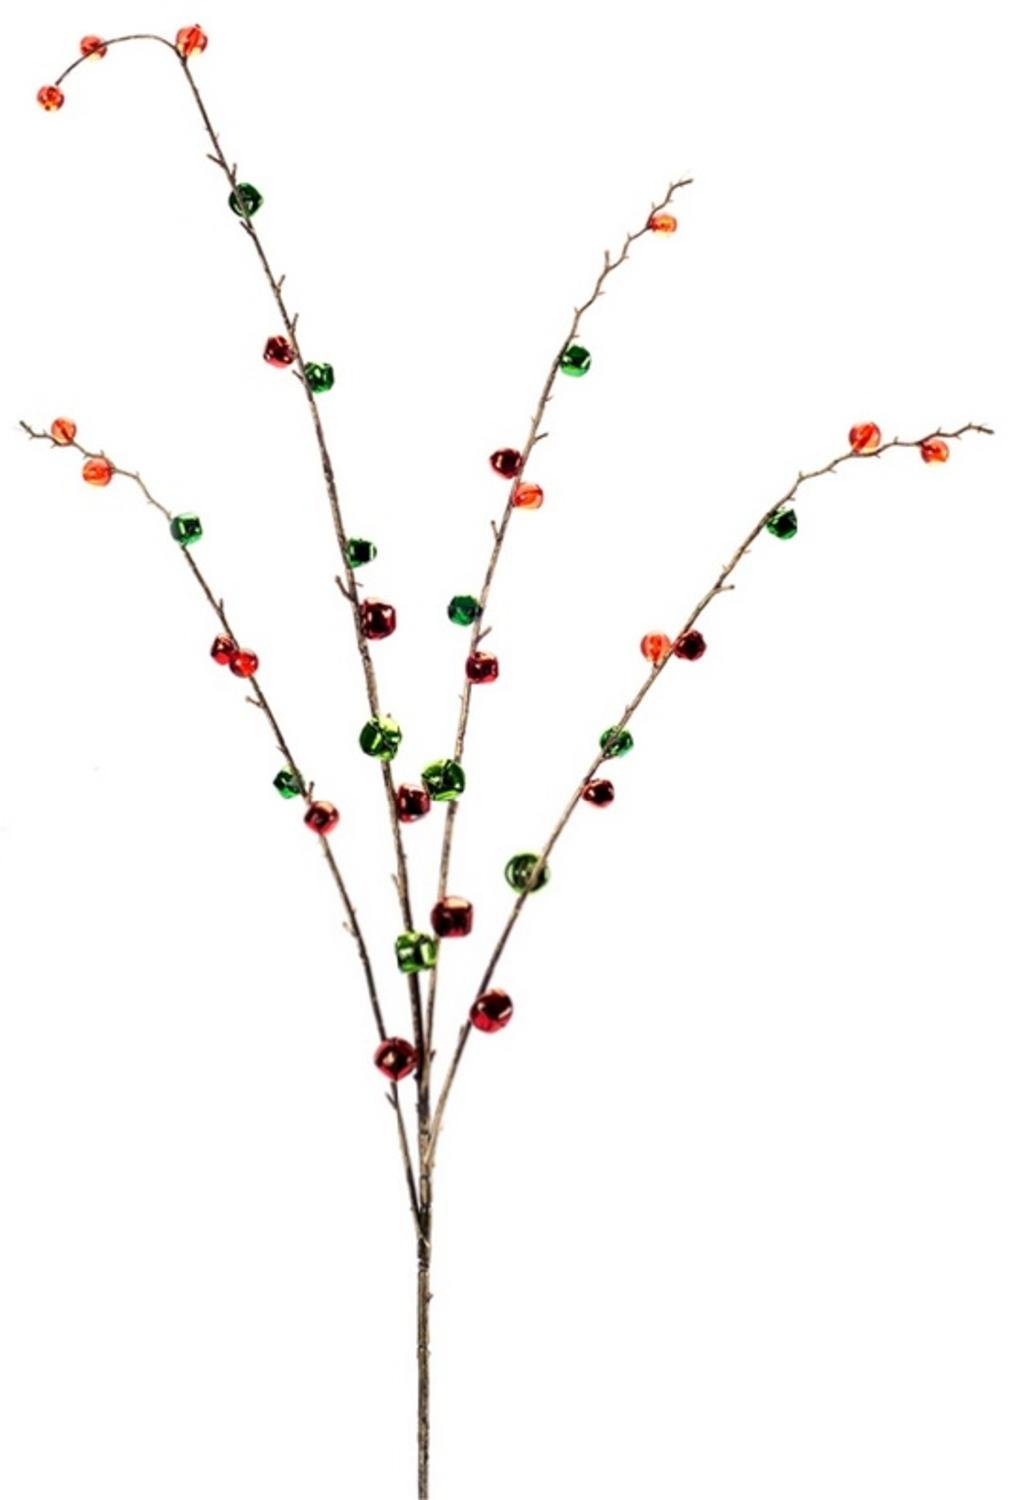 Pack of 12 Artificial Snowy Christmas Branches with Green, Red and Orange Bells 34''